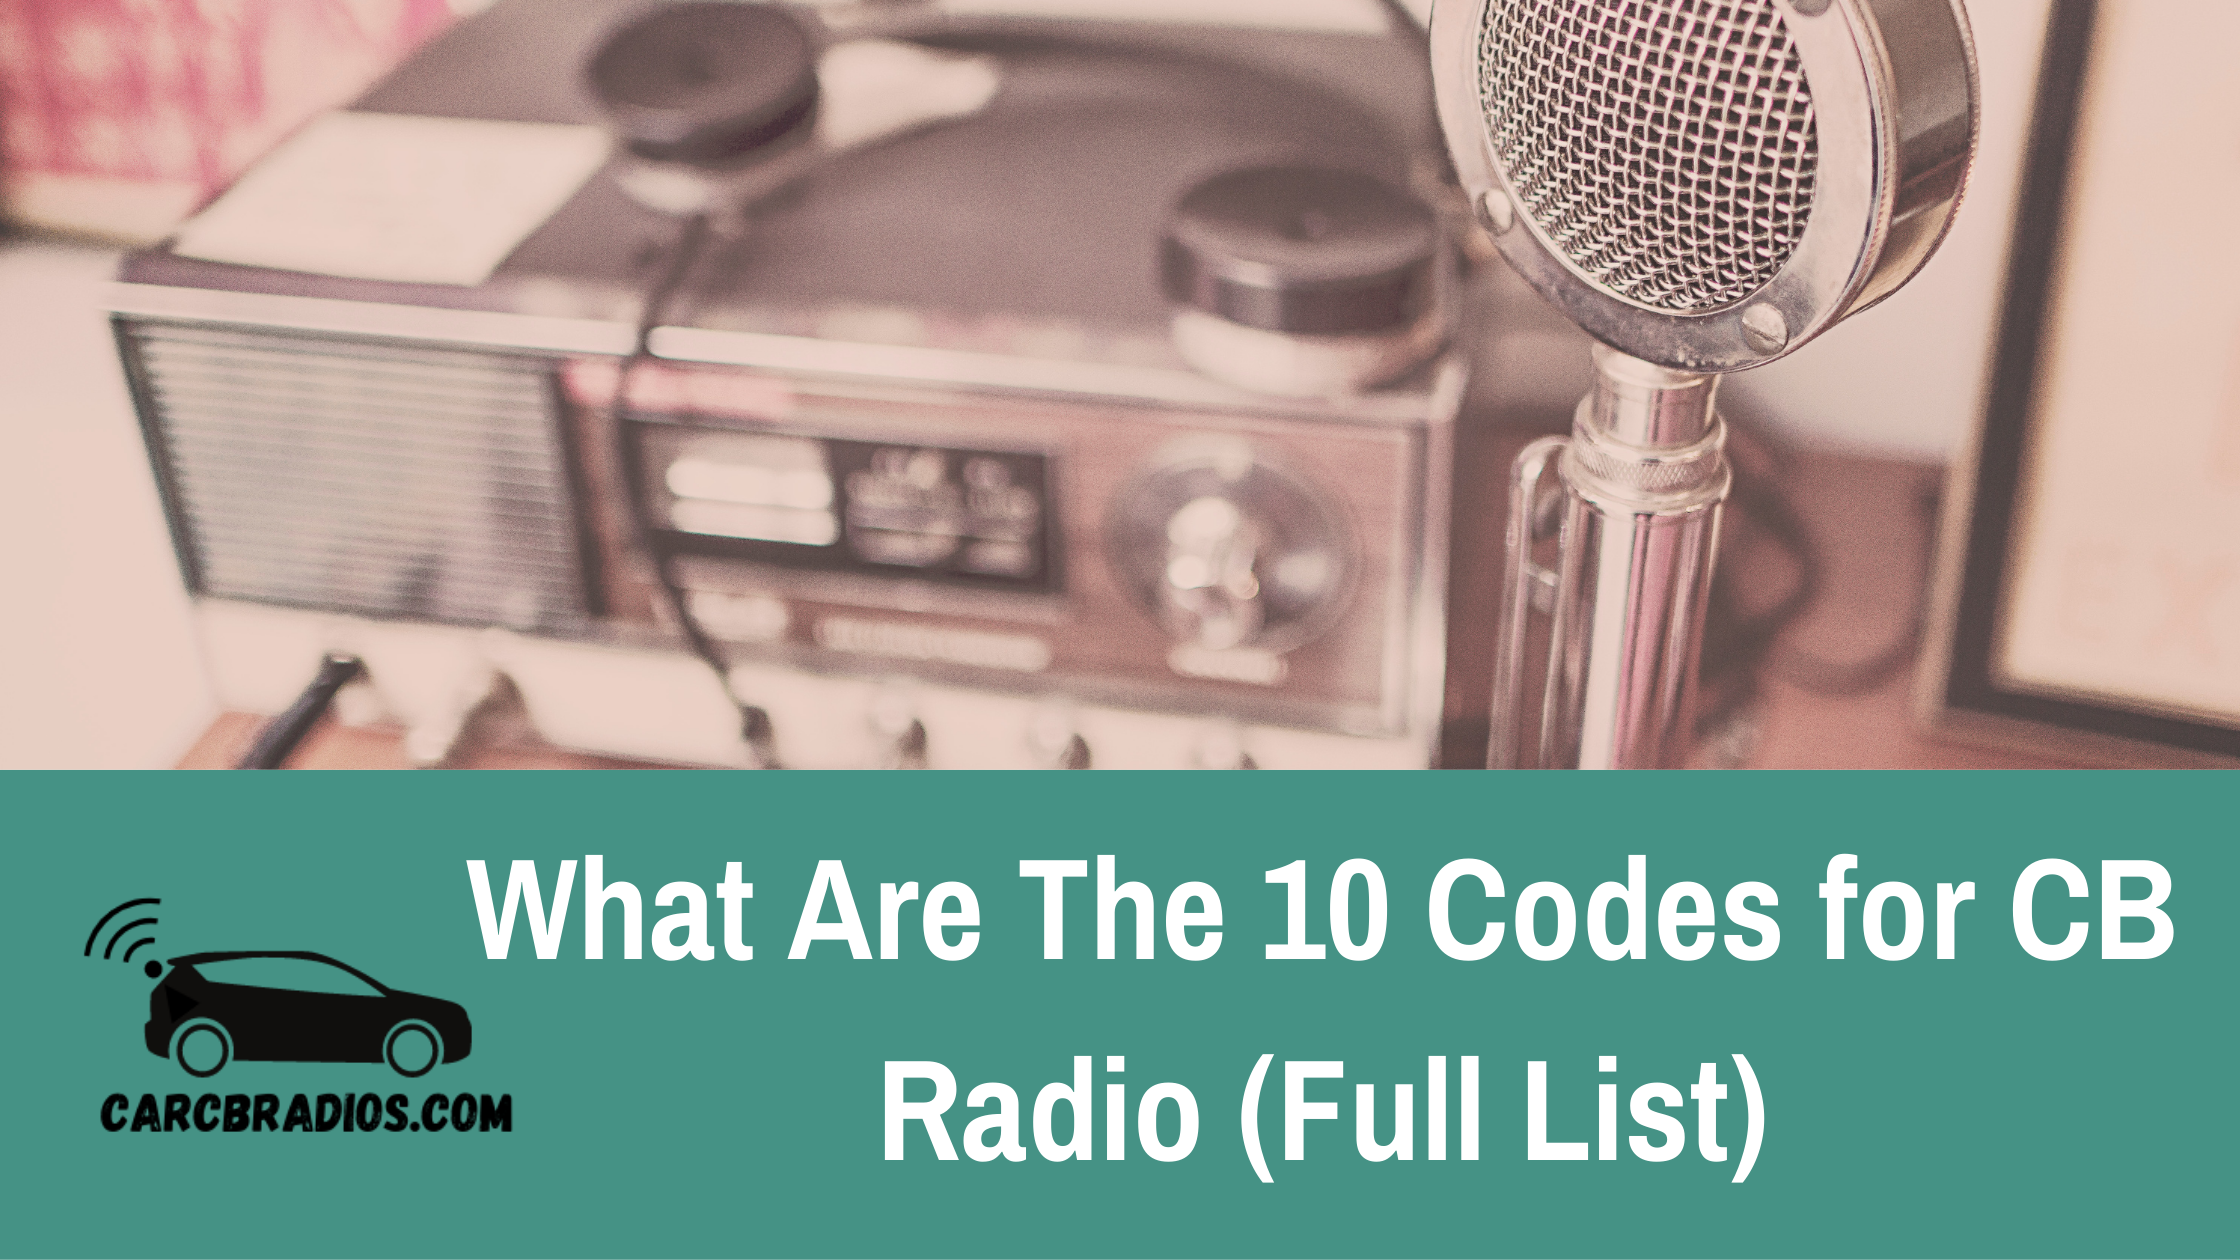 What Are The 10 Codes for CB Radio - The Detailed List